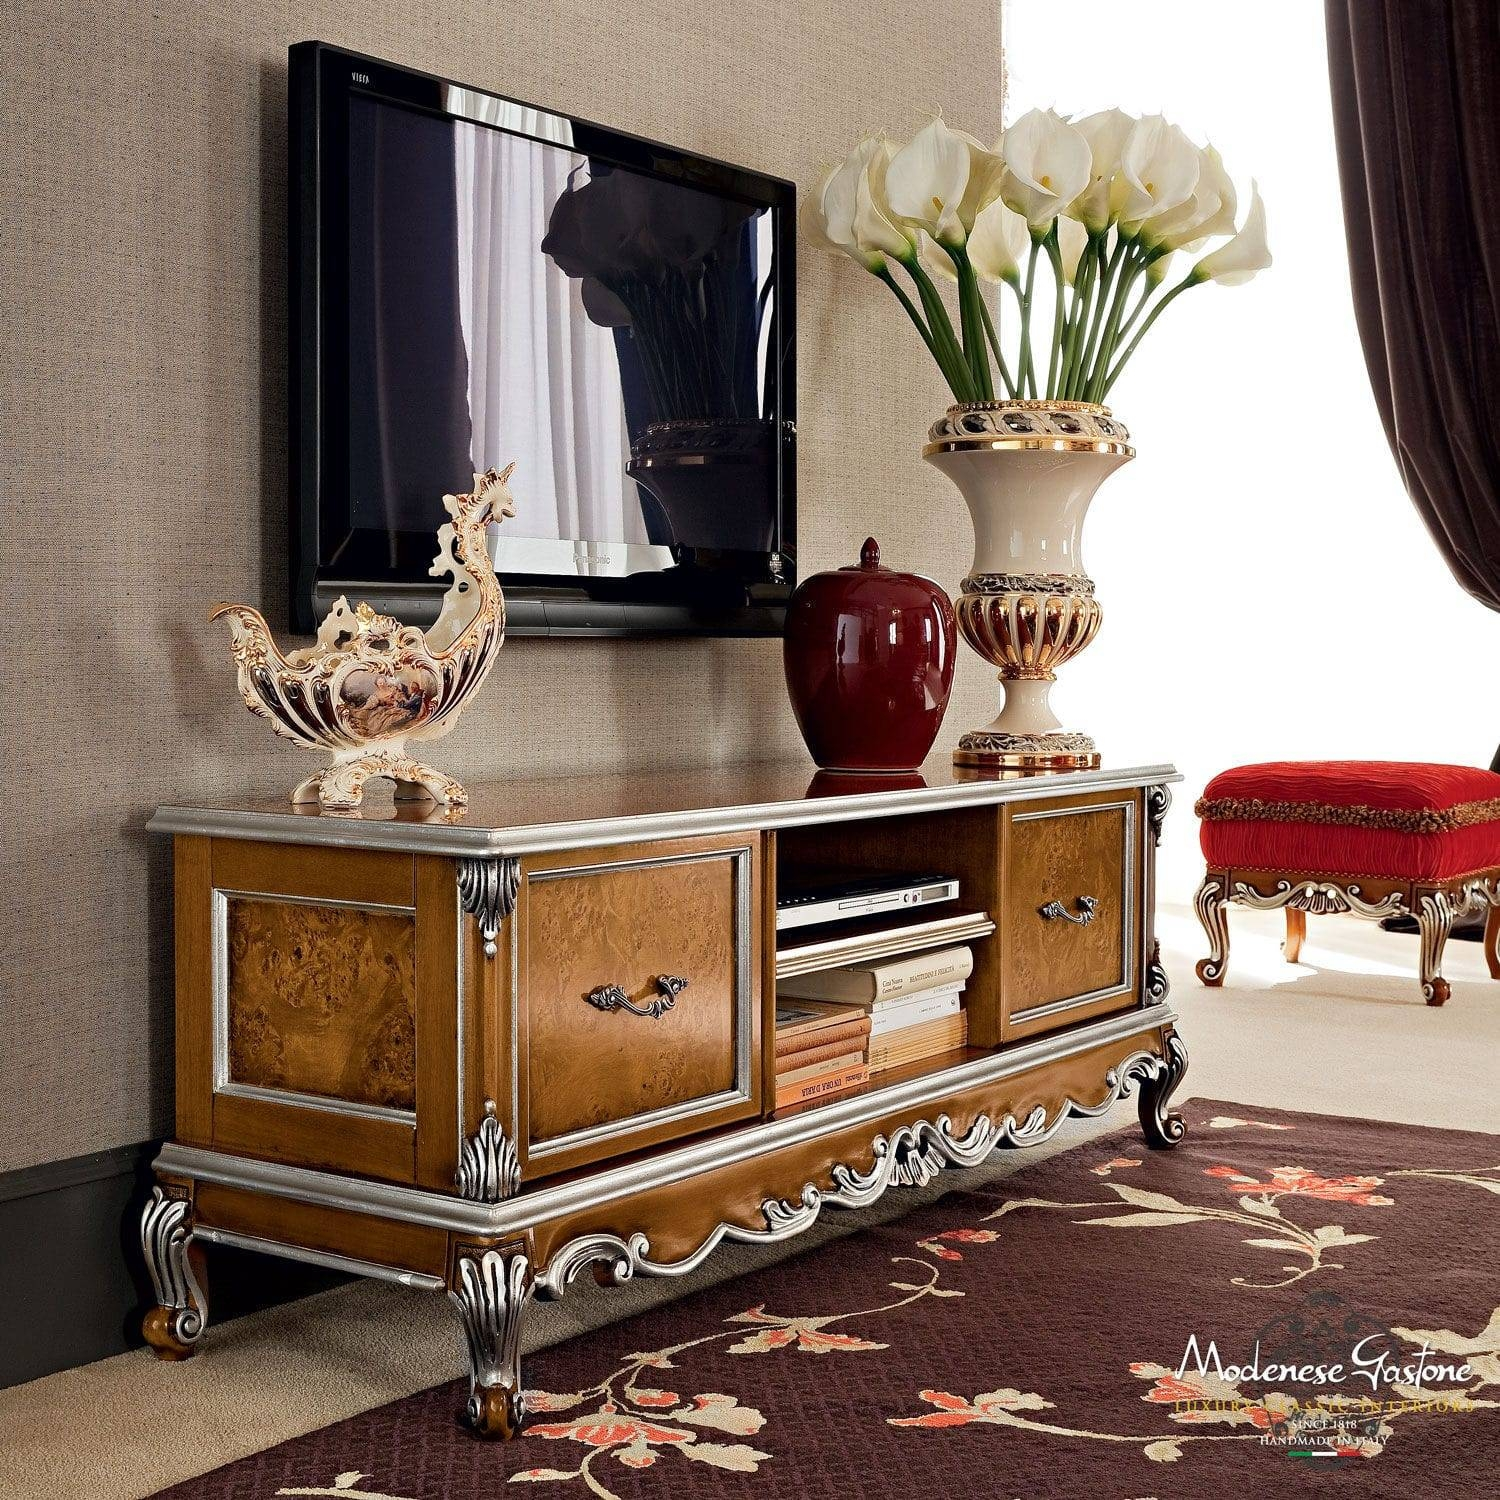 Classic Tv Cabinet / Wooden - Casanova - Modenese Gastone Luxury for Classic Tv Cabinets (Image 8 of 15)